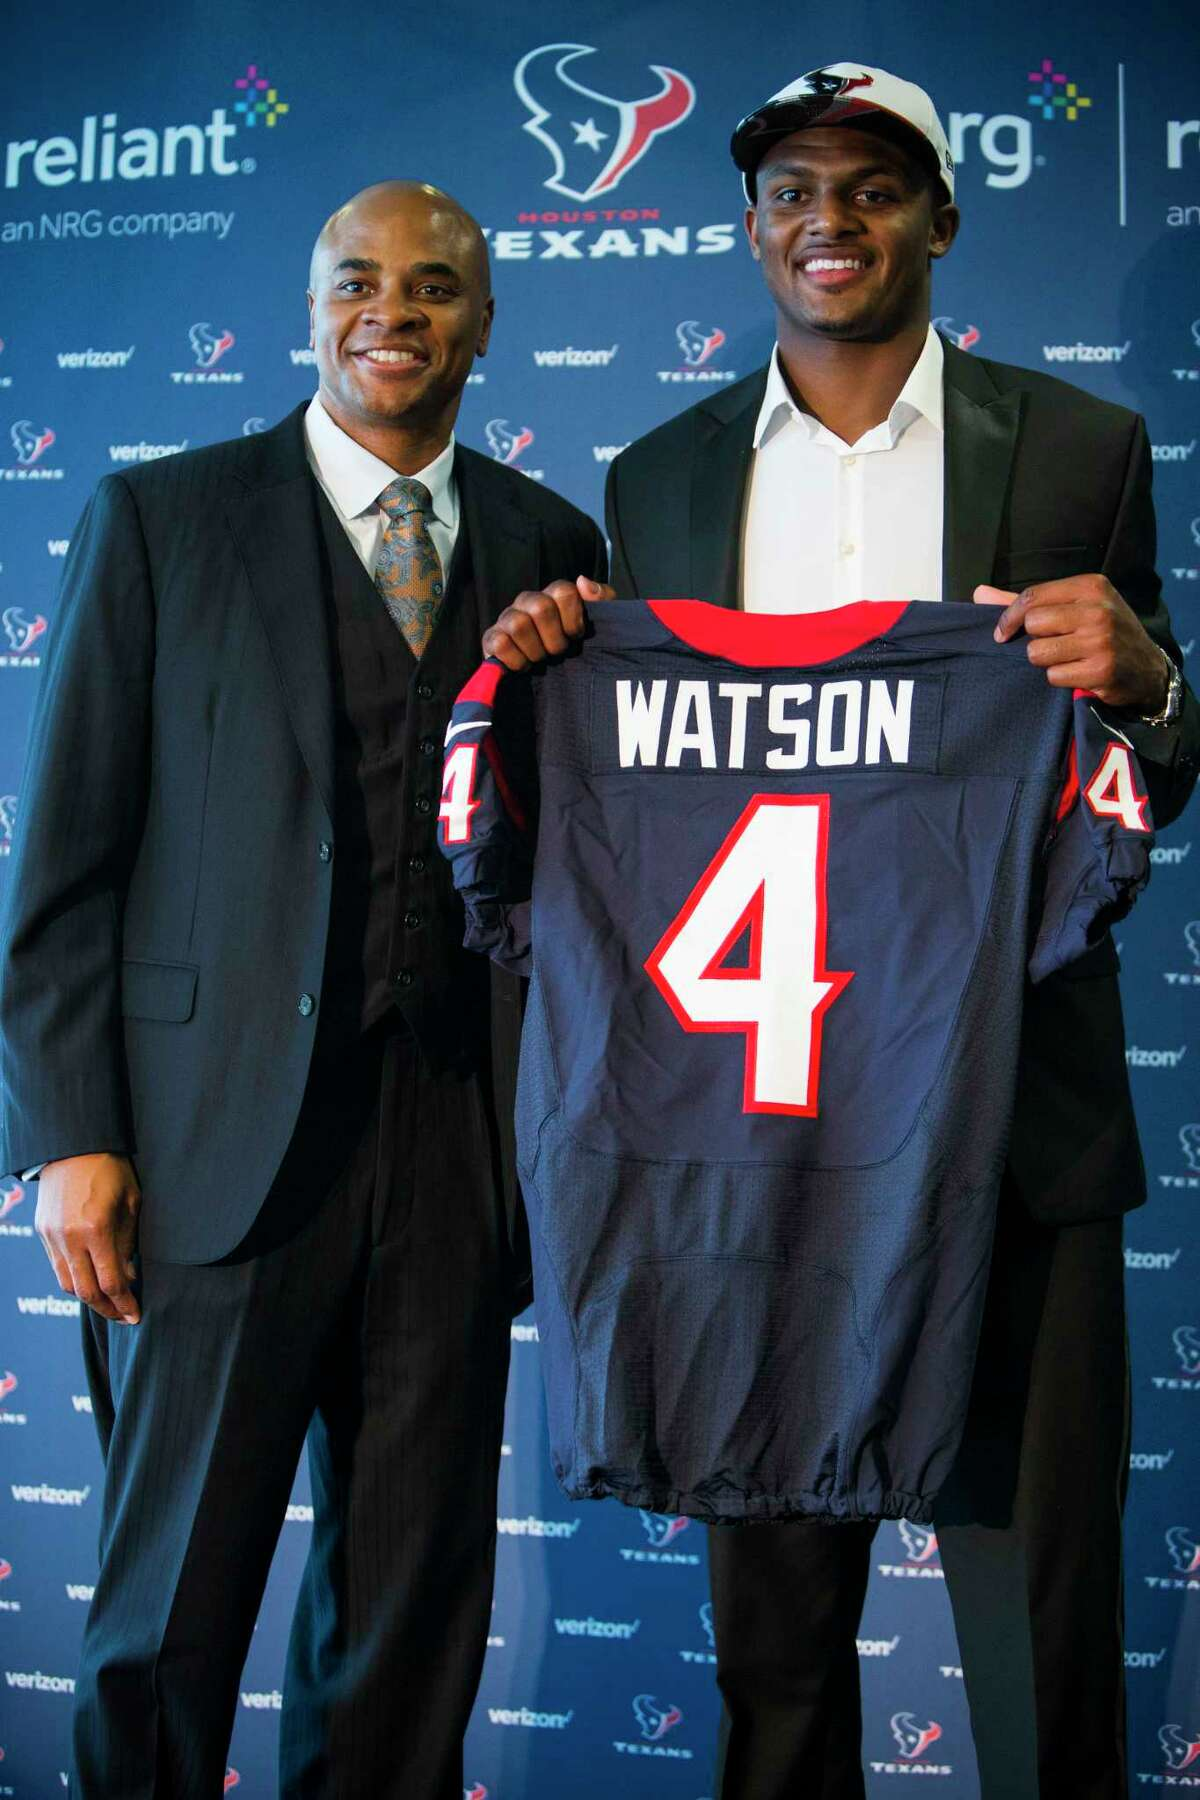 Houston Texans top draft pick Deshaun Watson shows off his new Texans jersey as he poses for a photo with general manager Rick Smith following a news conference at NRG Stadium on Friday, April 28, 2017, in Houston. The Texans traded up in the NFL Draft with the Cleveland Browns to aquire the quarterback.